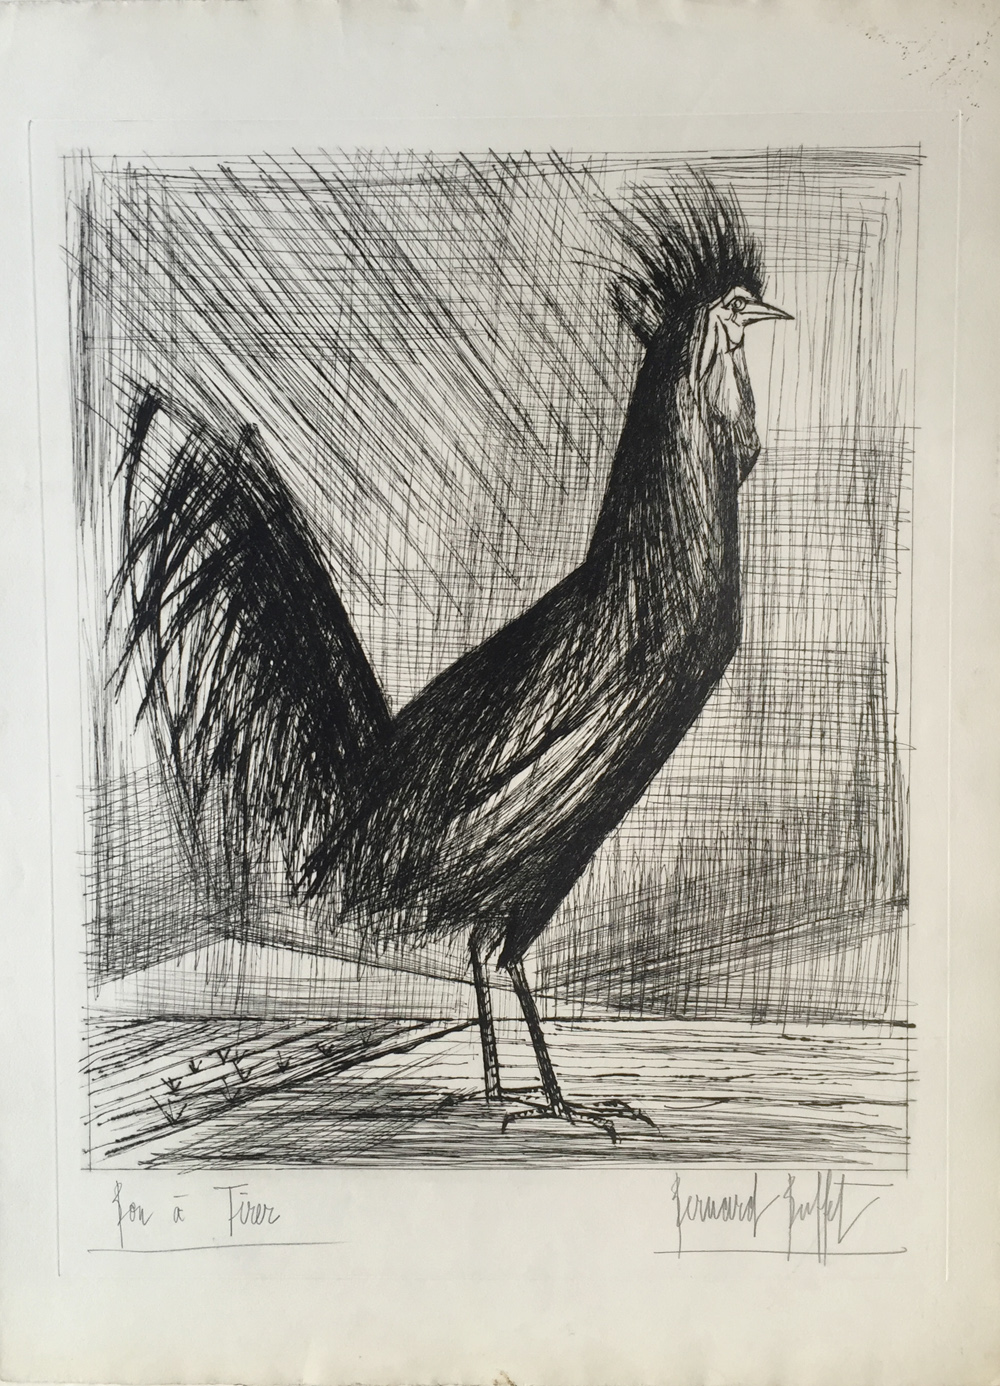 LE COQ (THE ROOSTER)